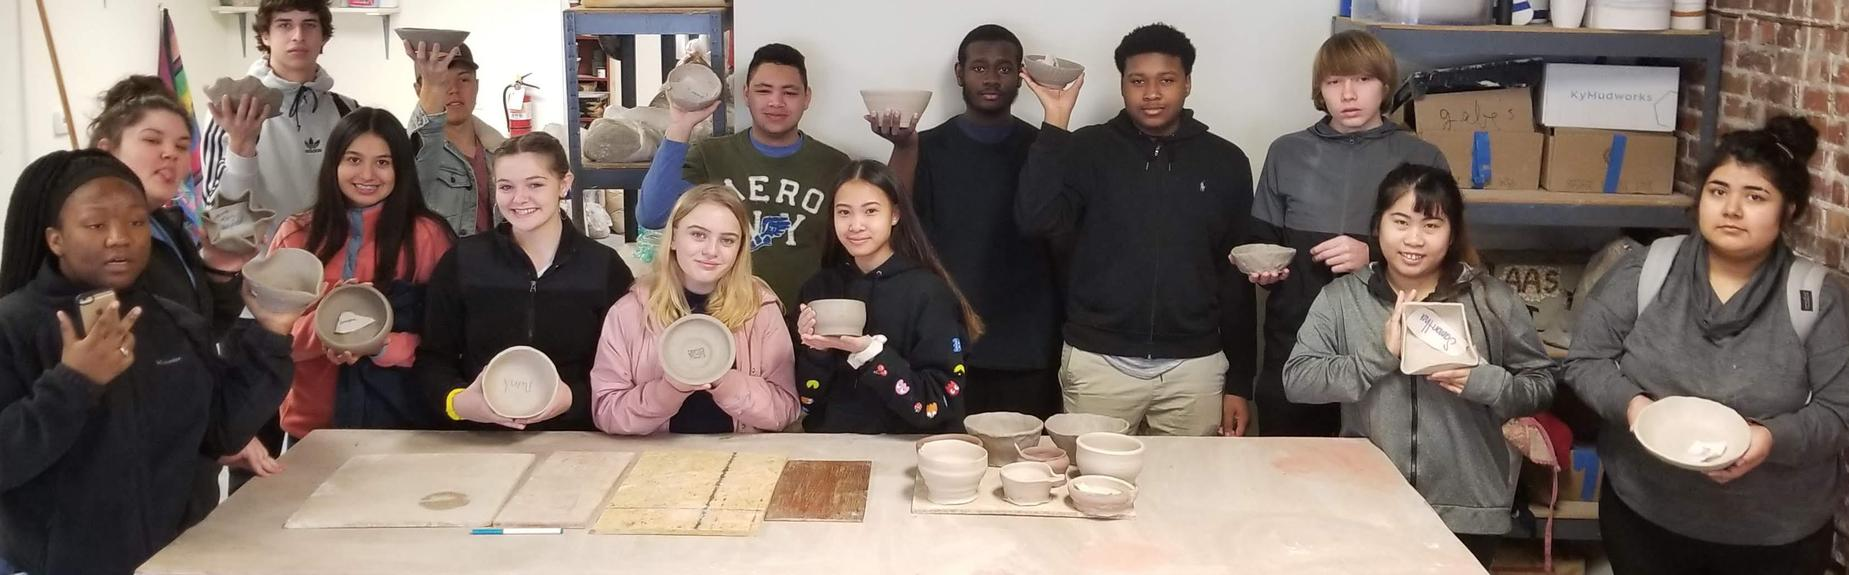 students holding up pottery they made at Pocosin Arts